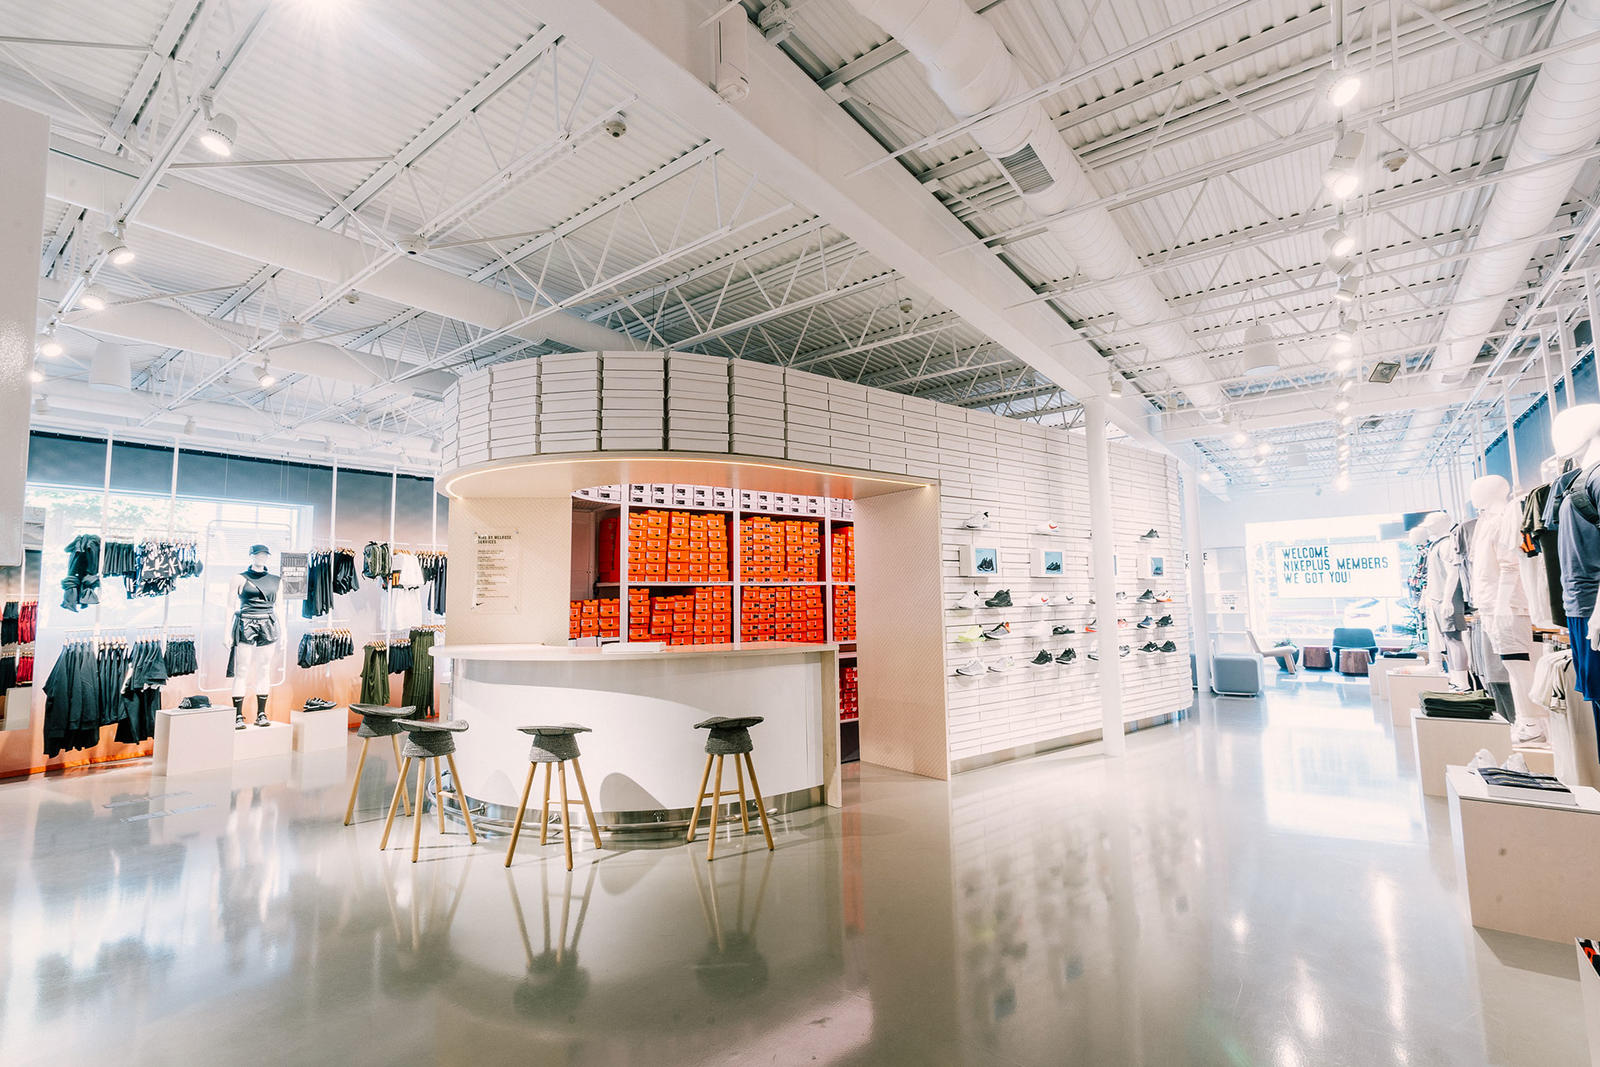 missions-mmm-future-retail-concept-nike-melrose-los-angeles